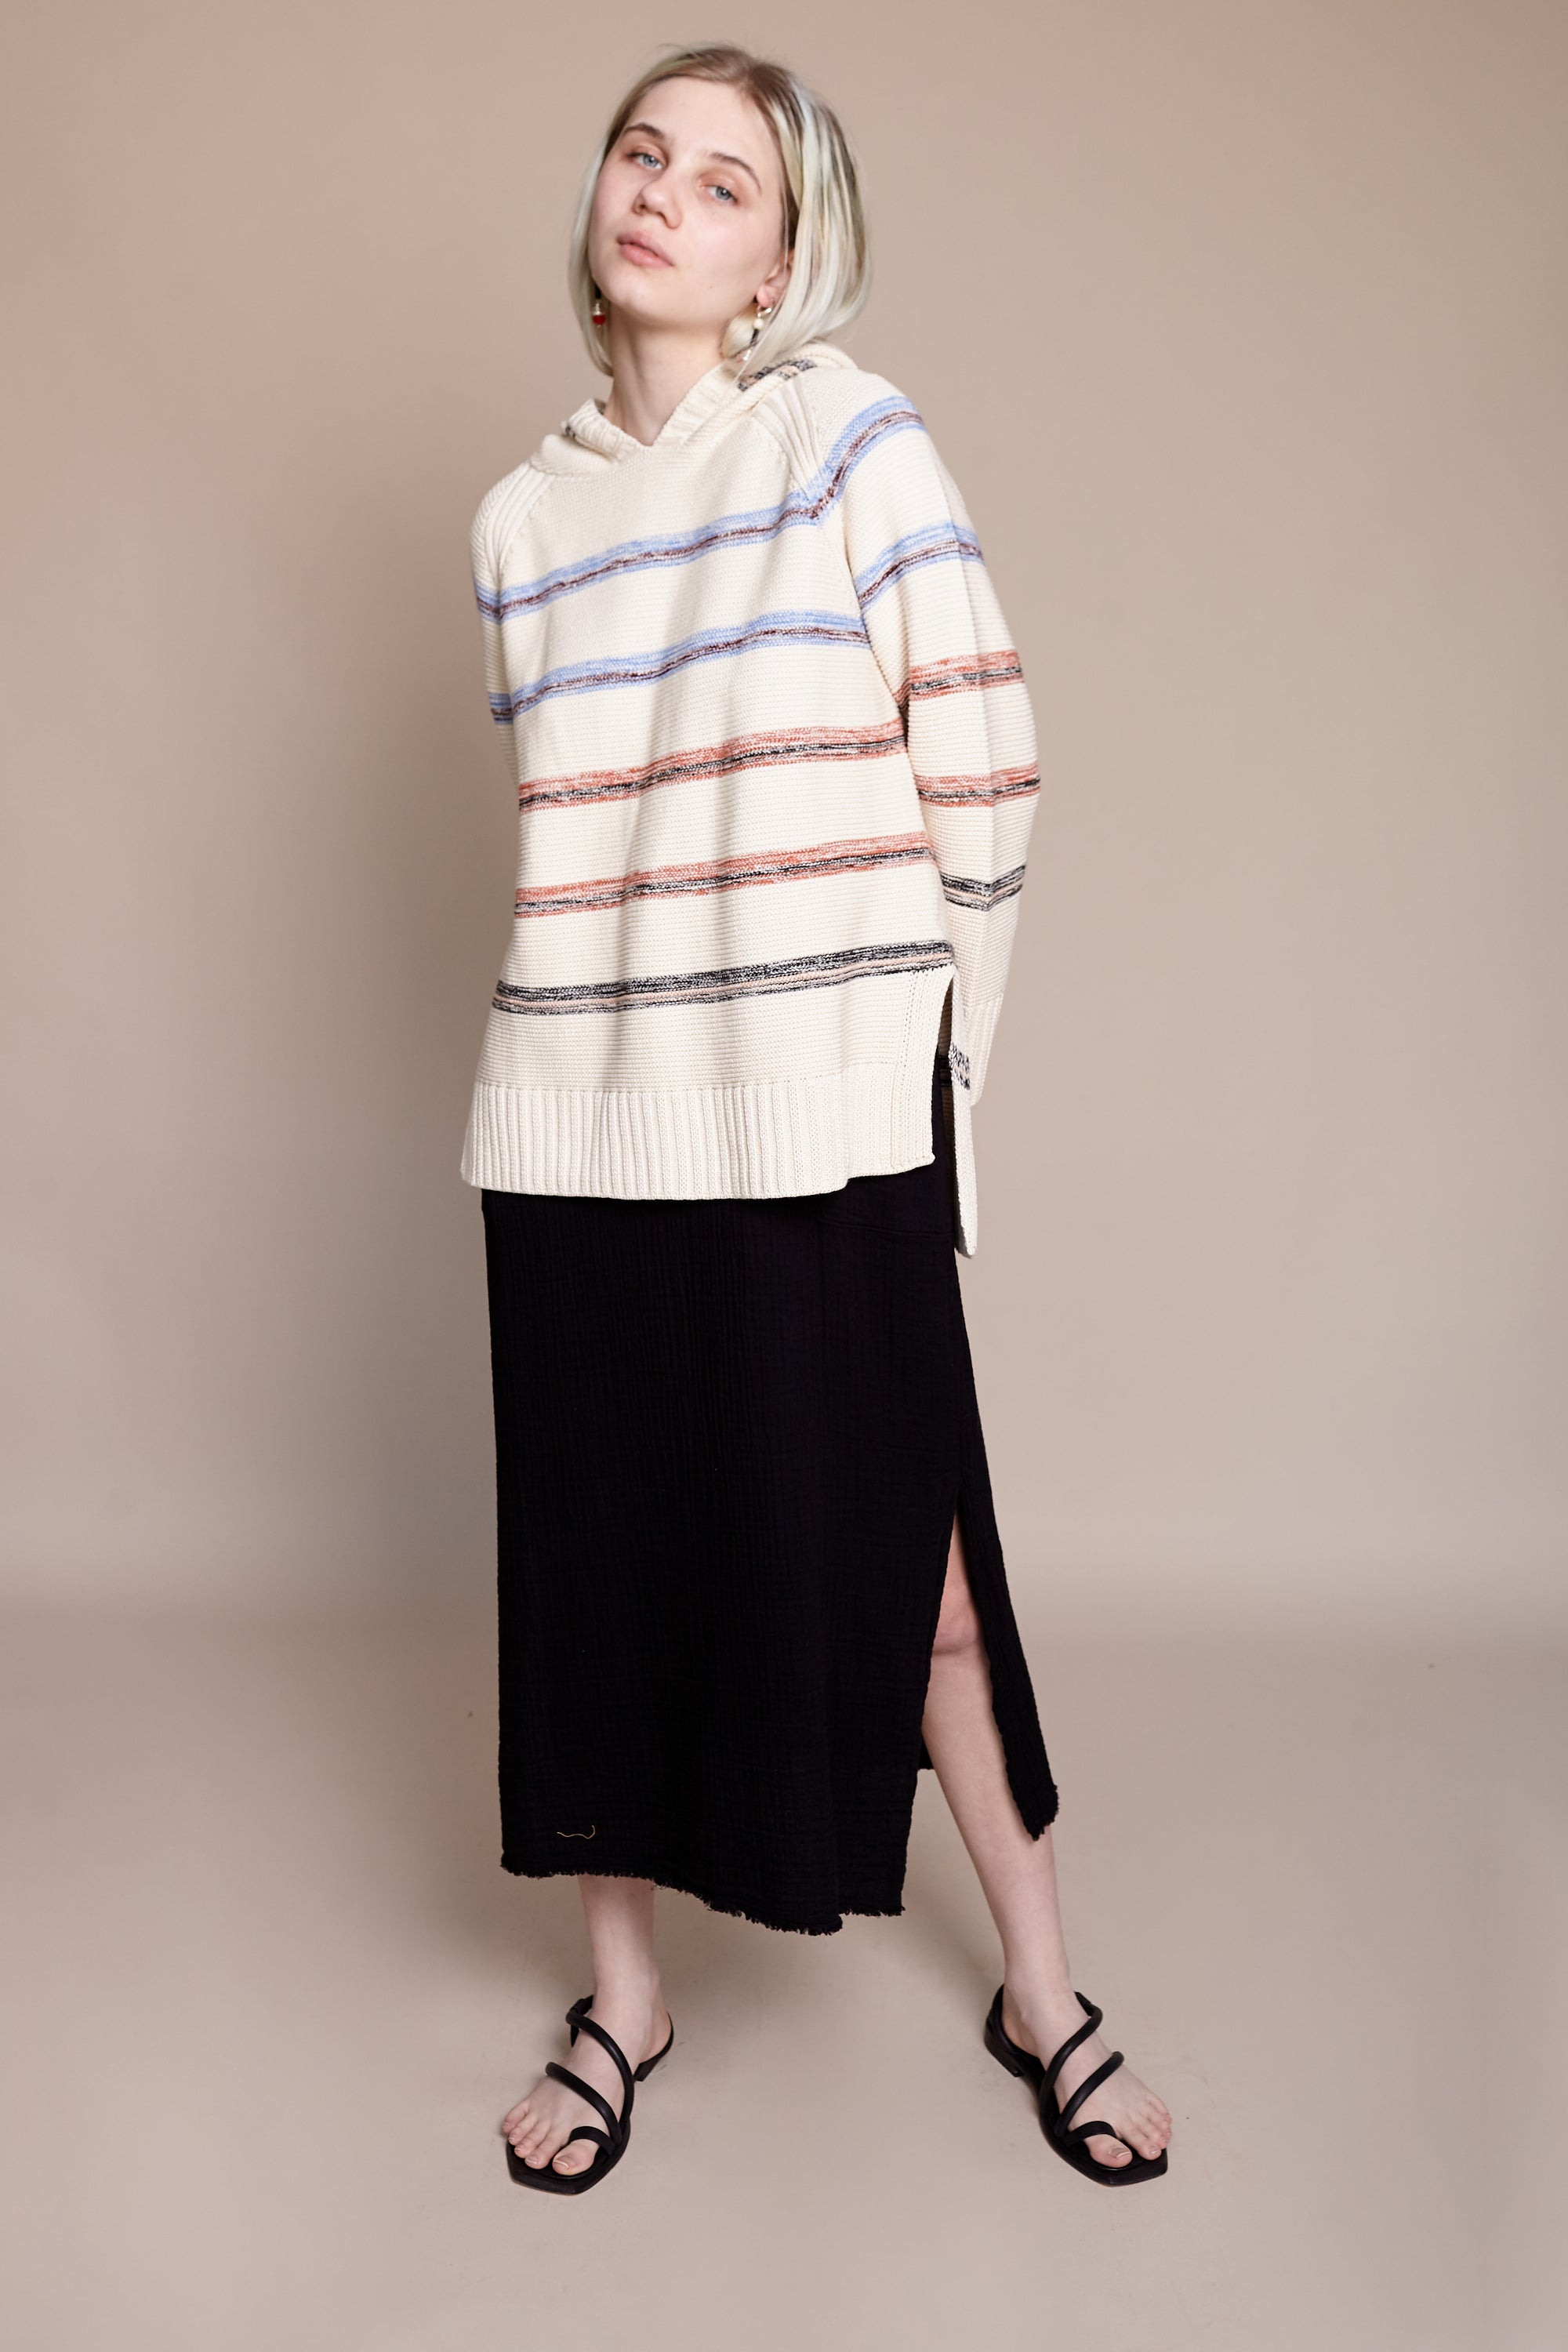 Apiece Apart Baja Hoody in Light Stripe - Vert & Vogue